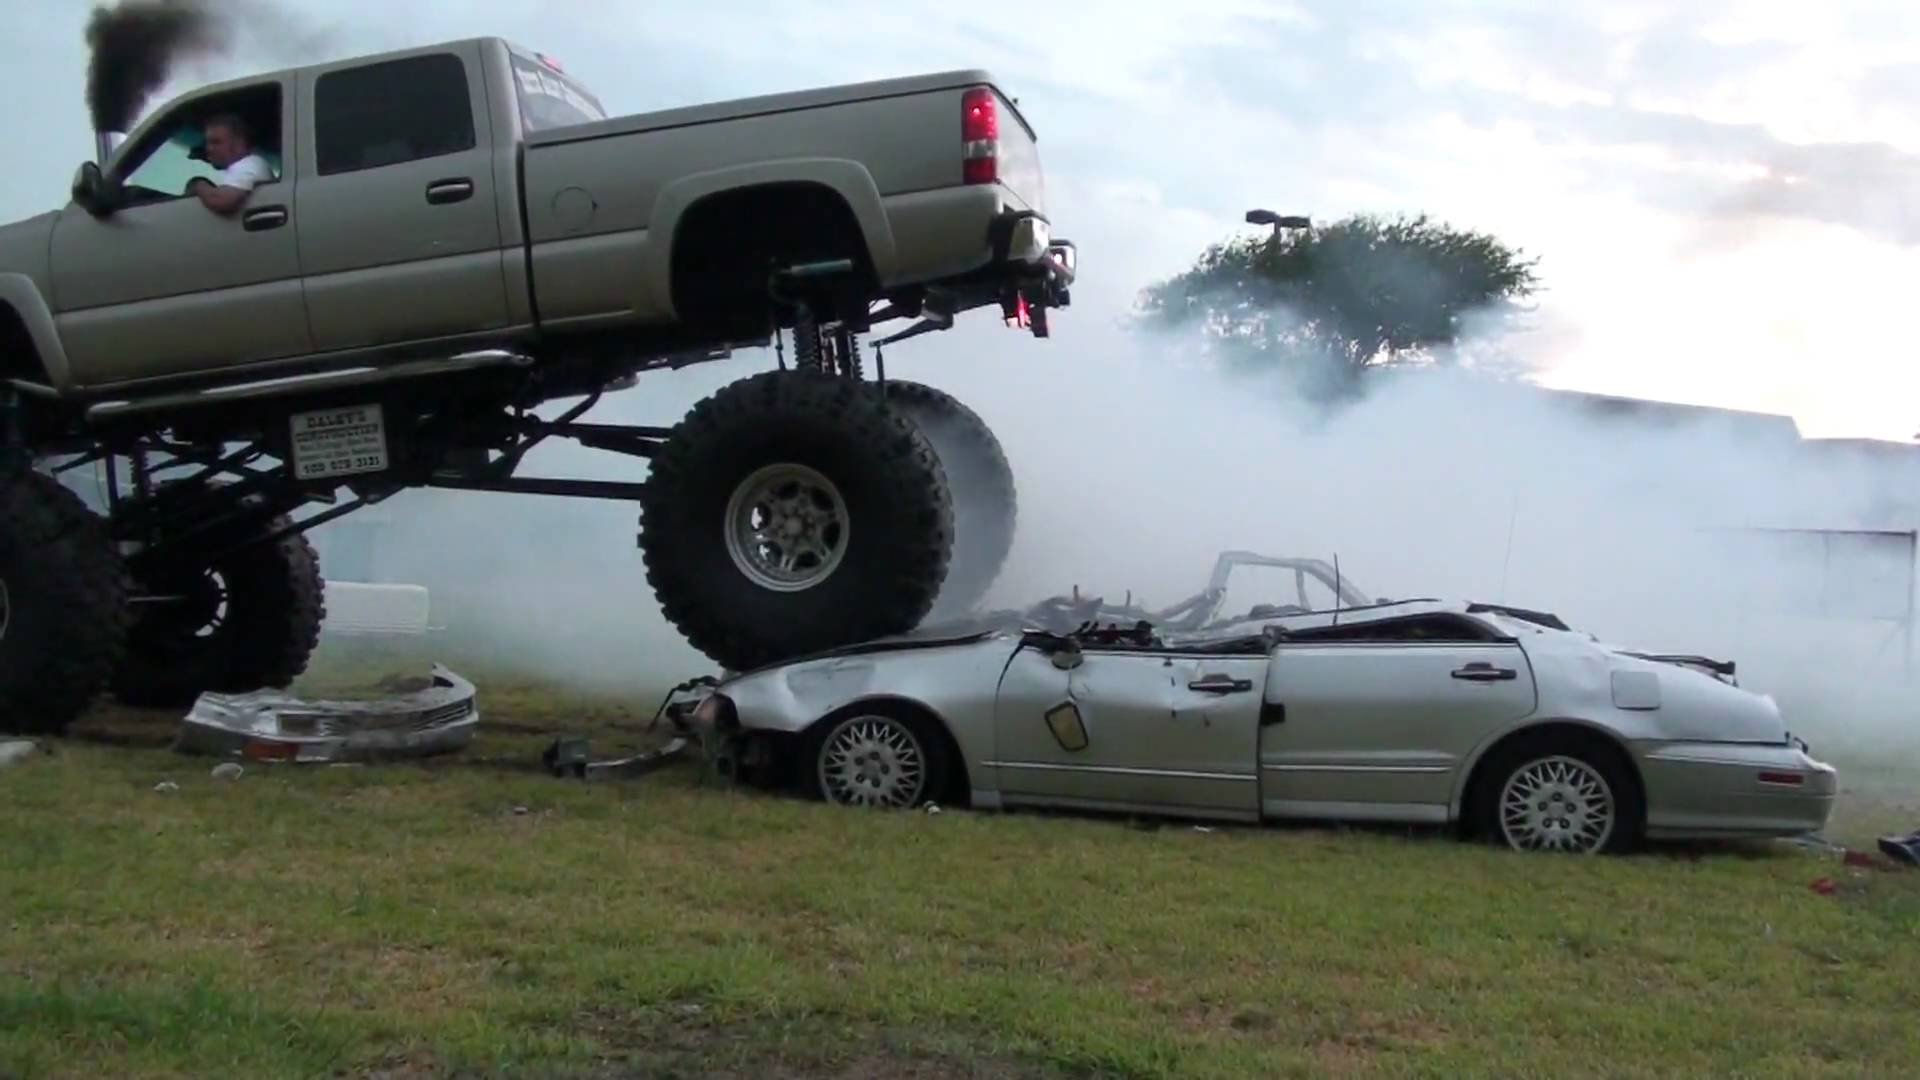 Ton Chevy Duramax Diesel Epic Burnout On Two Cars - Cool cars doing burnouts